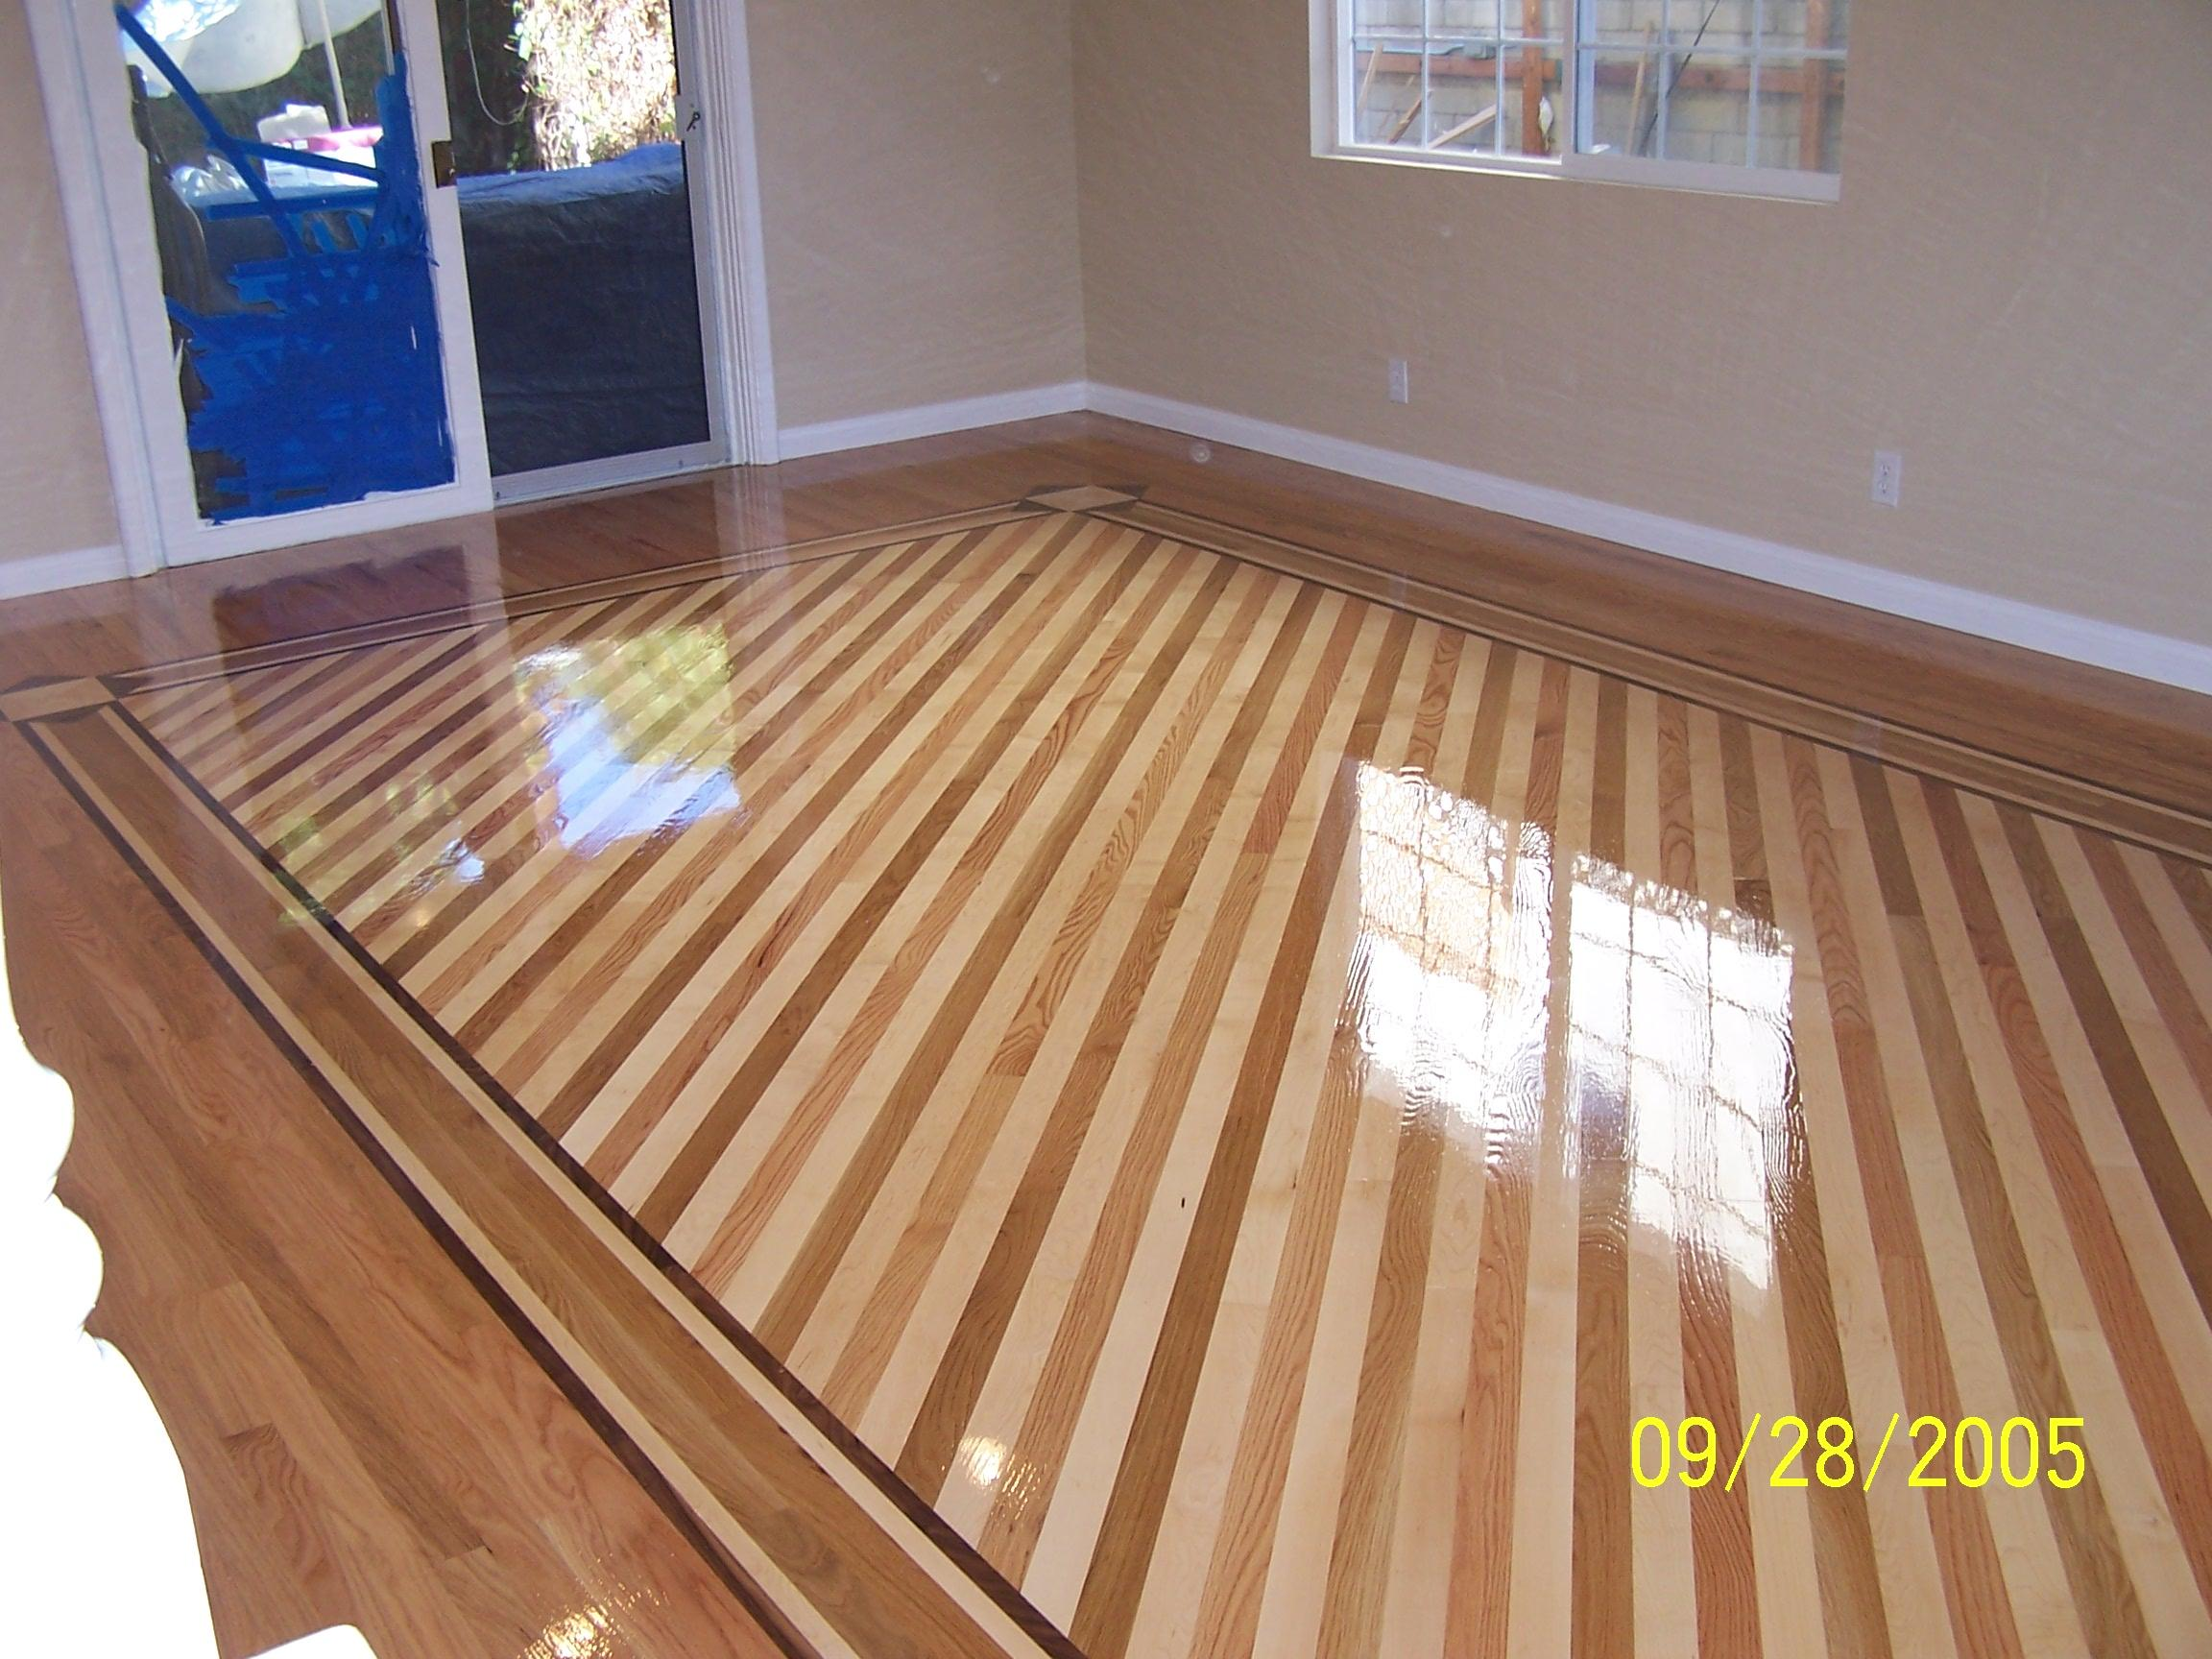 almahdi hardwood flooring in sherman oaks ca 91423